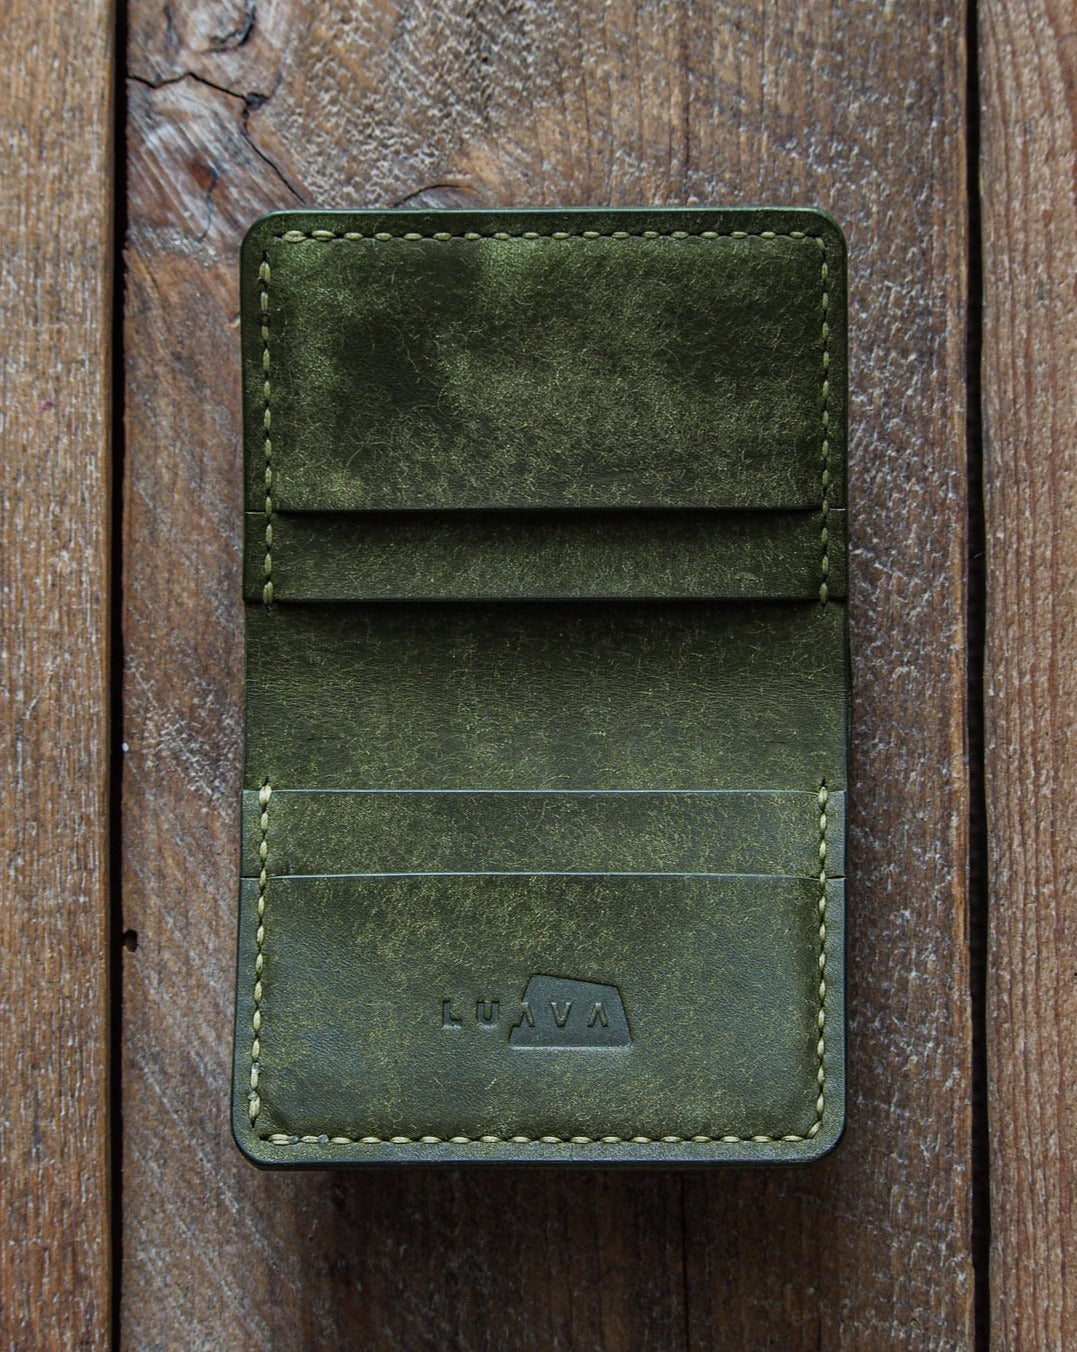 Luava handmade leather wallet NERO pine card holder cardholder handcrafted pueblo olive front open